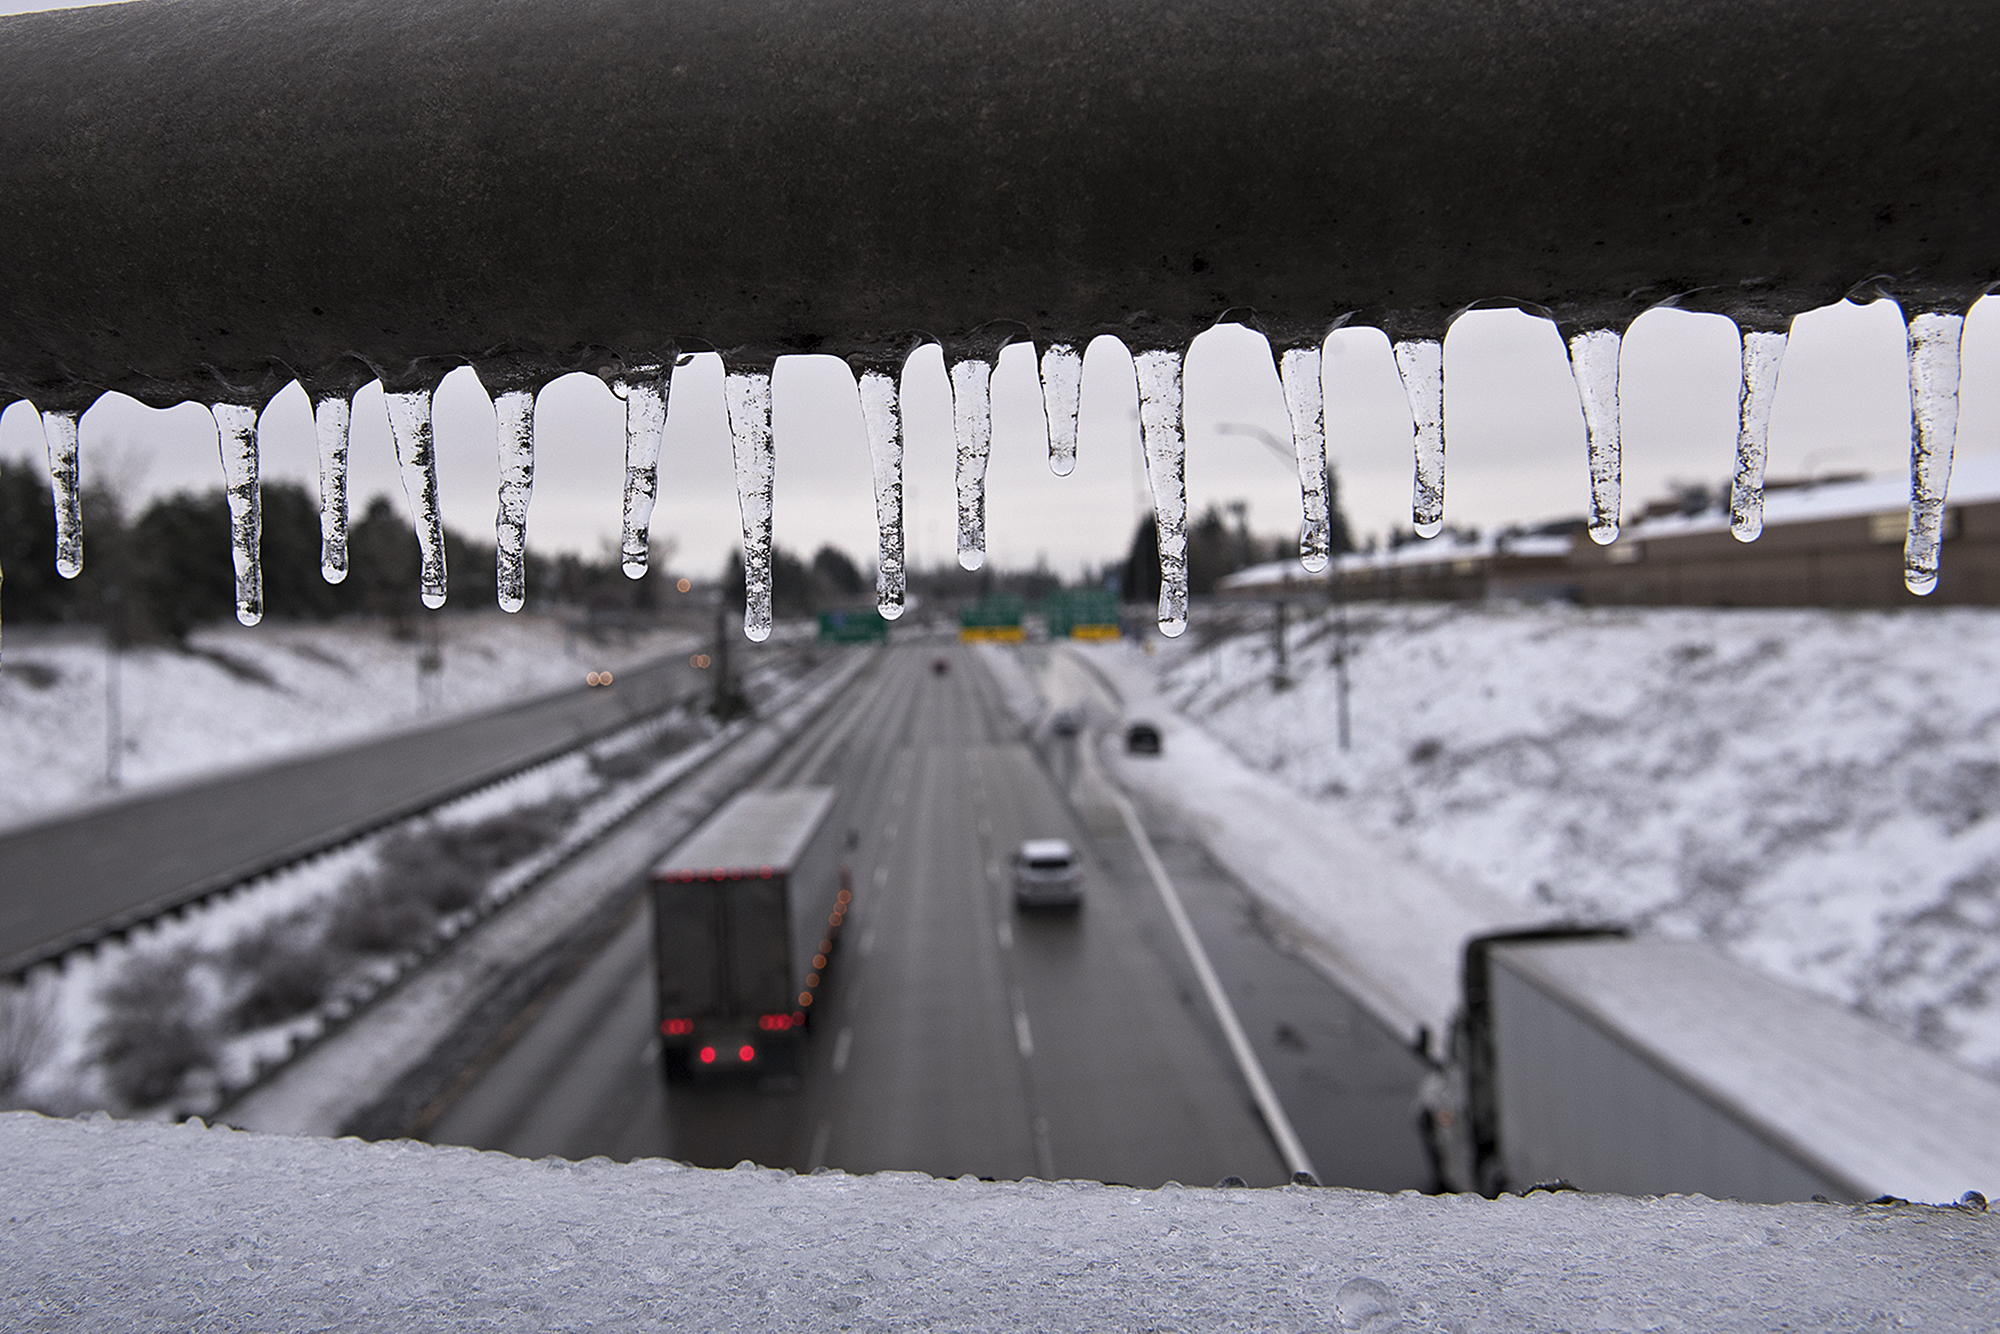 Icicles hang from the railing of a bridge as sporadic traffic flows smoothly in the northbound lane of Interstate 205 following an ice storm Monday morning, Feb. 15, 2021. (Amanda Cowan/The Columbian)